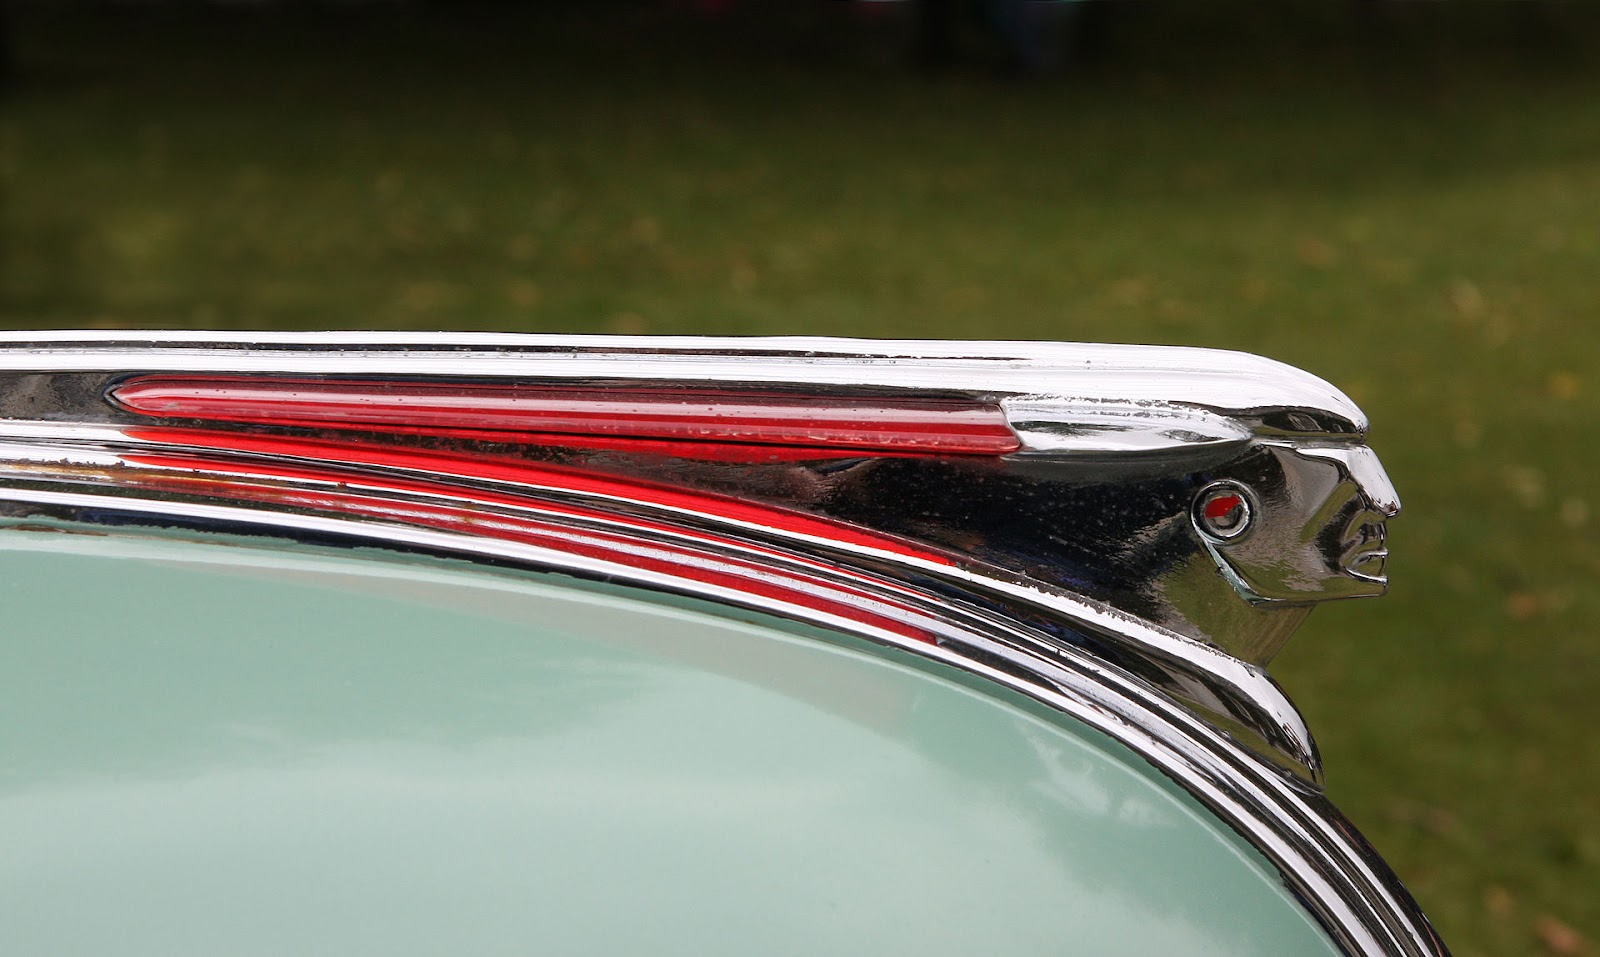 1948_Pontiac_motif_-_Flickr_-_exfordy